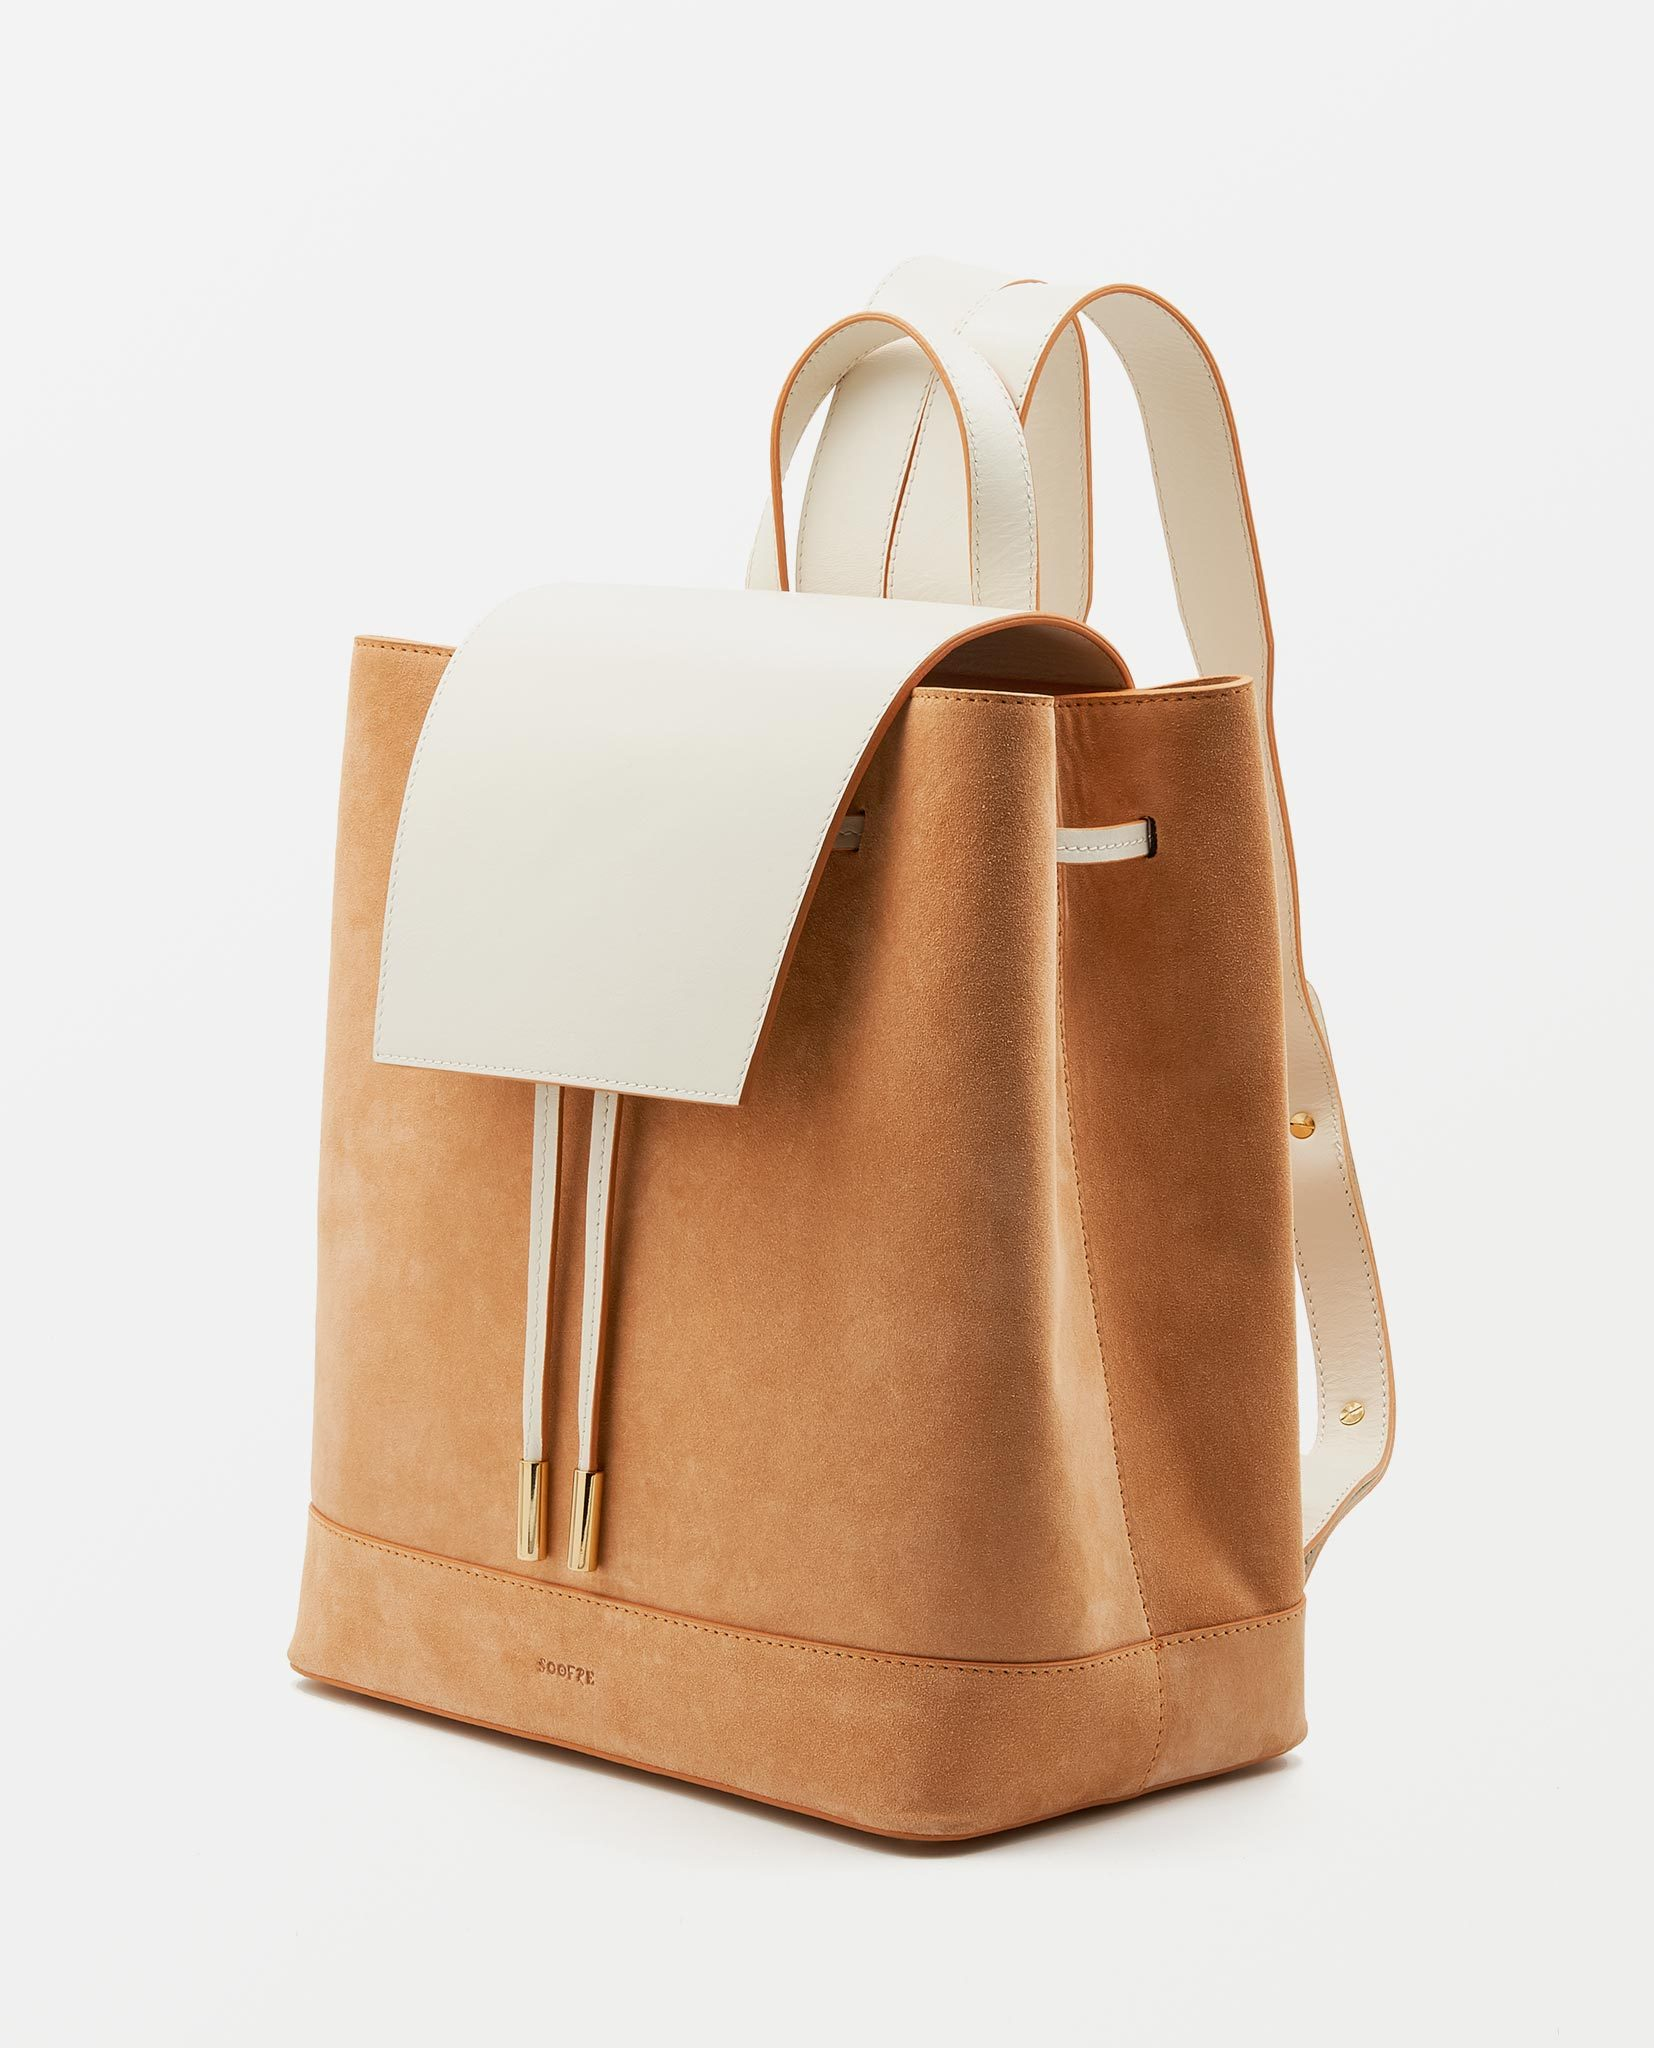 Soofre Backpack Suede Leather Apricot Cream